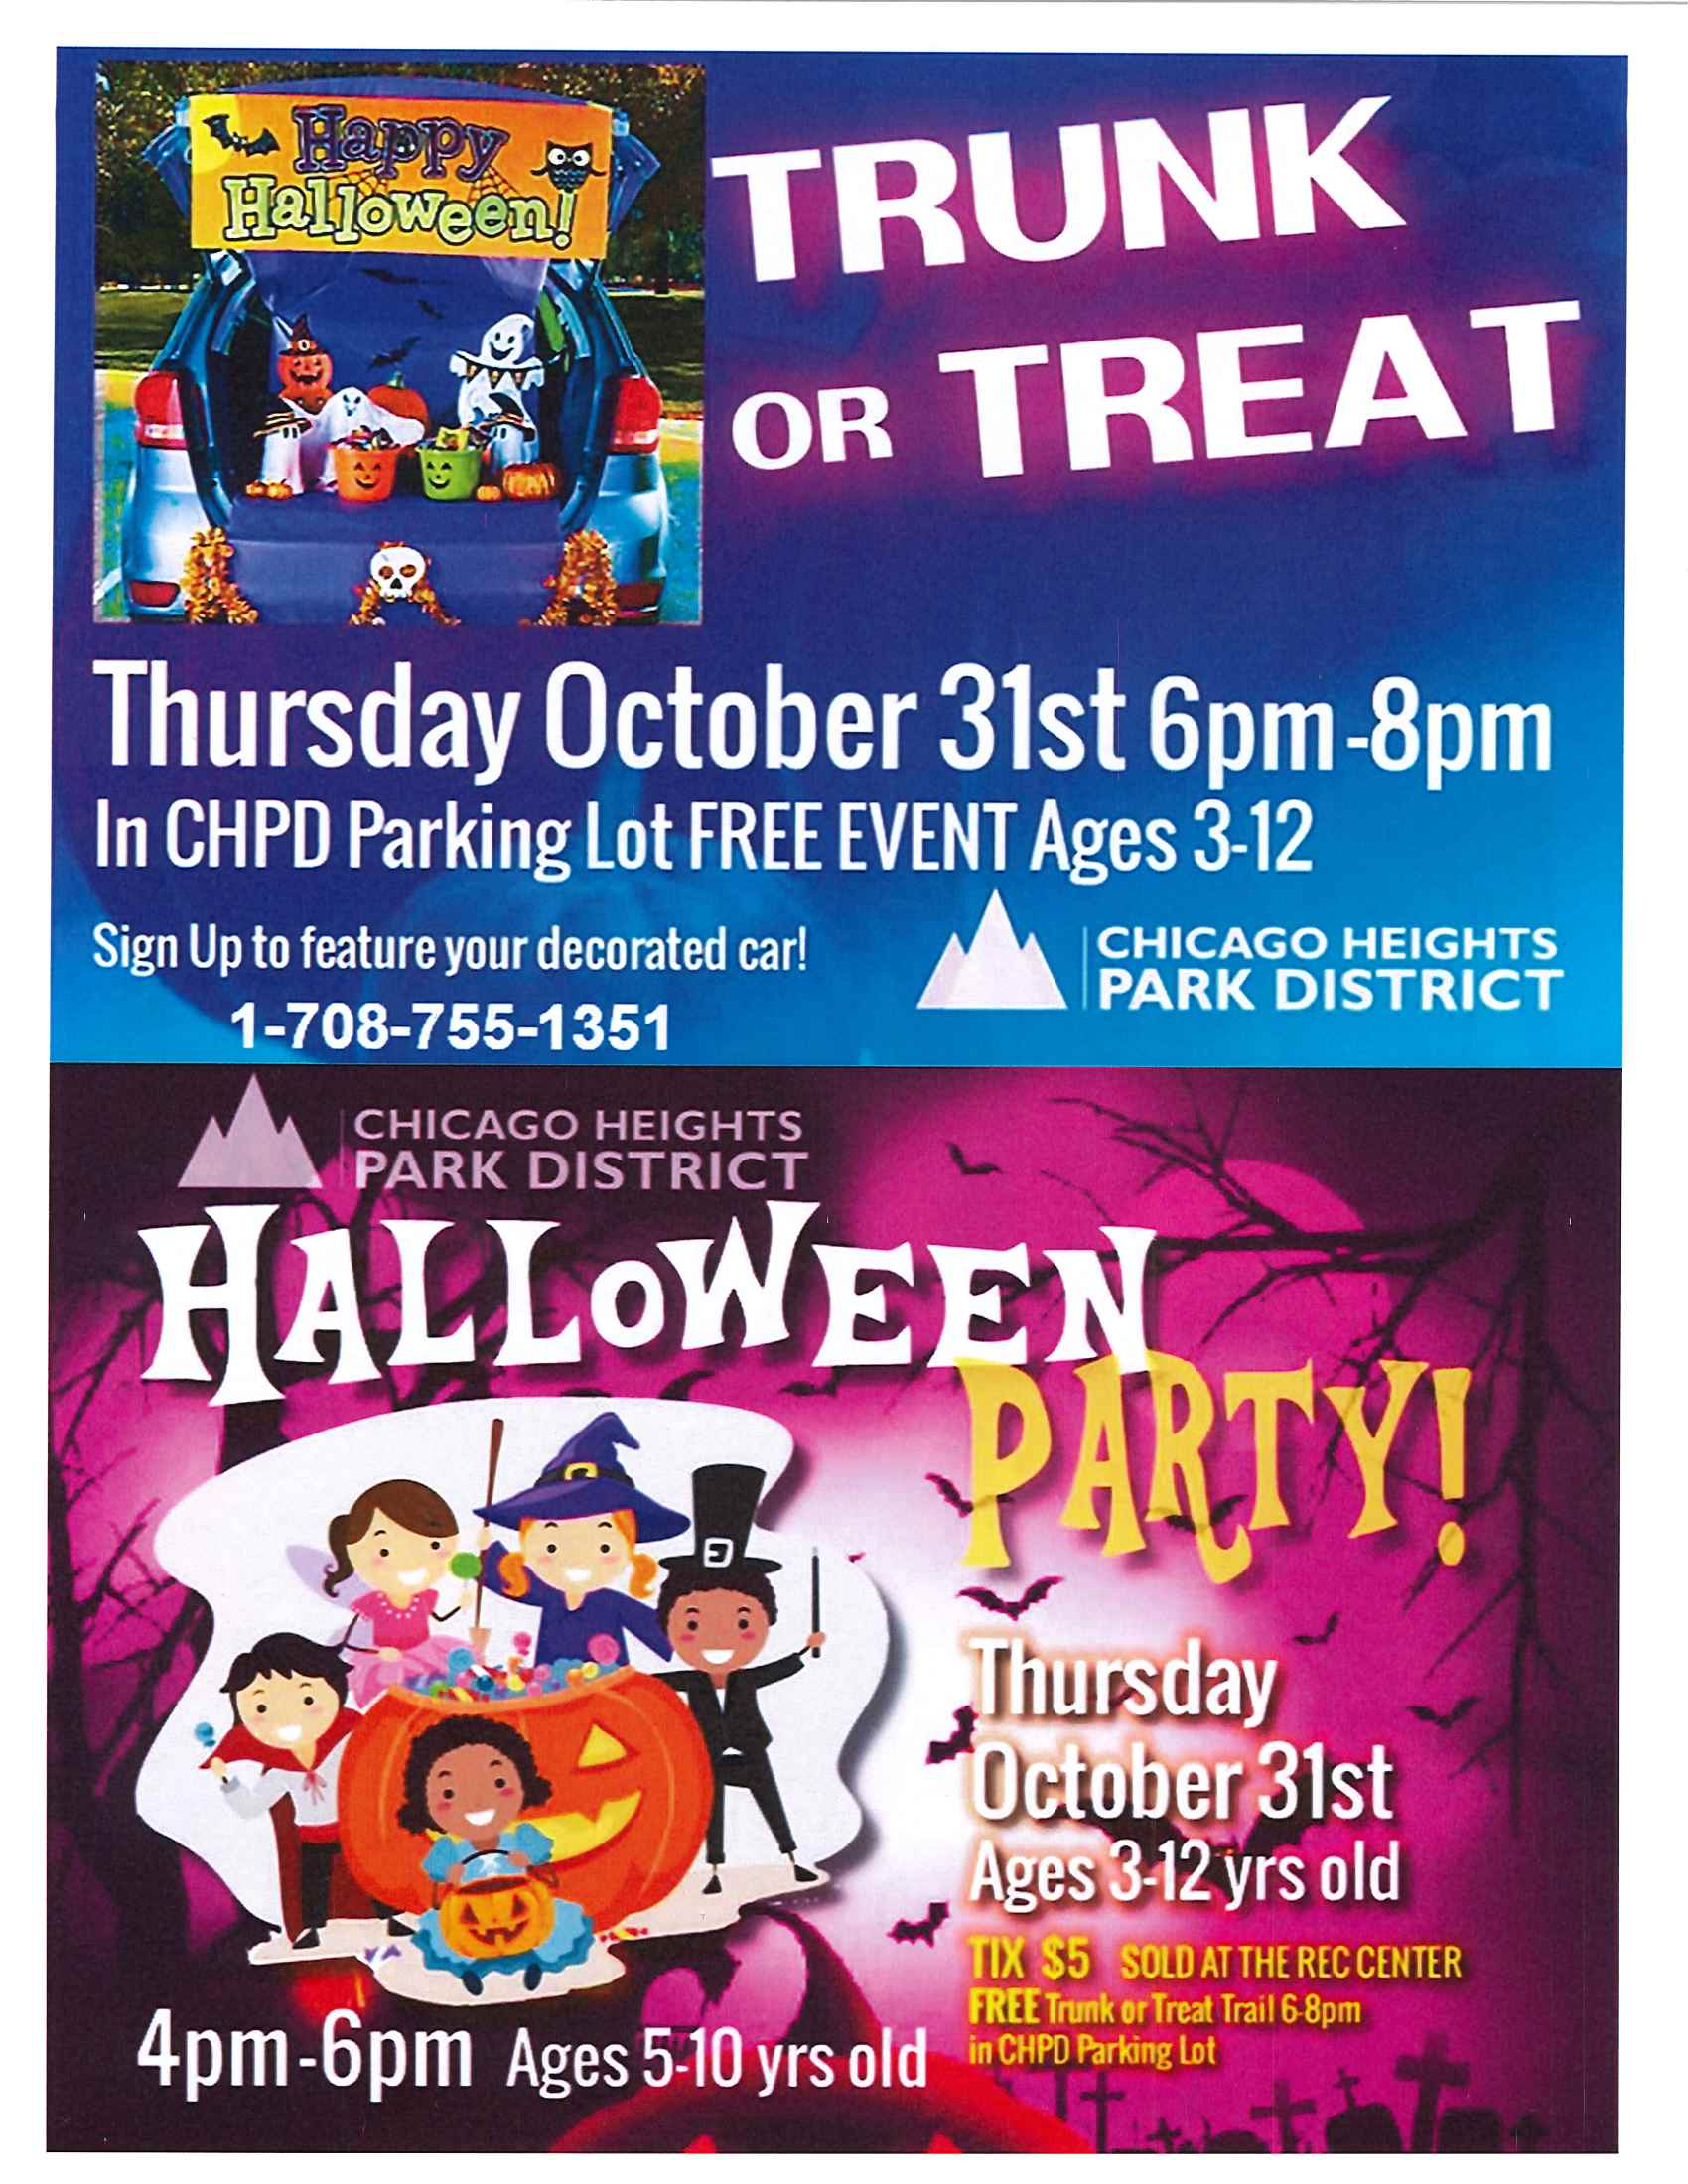 C.H. Park District Trunk or Treat Event and Halloween Party - Thur., Oct. 31, 2019